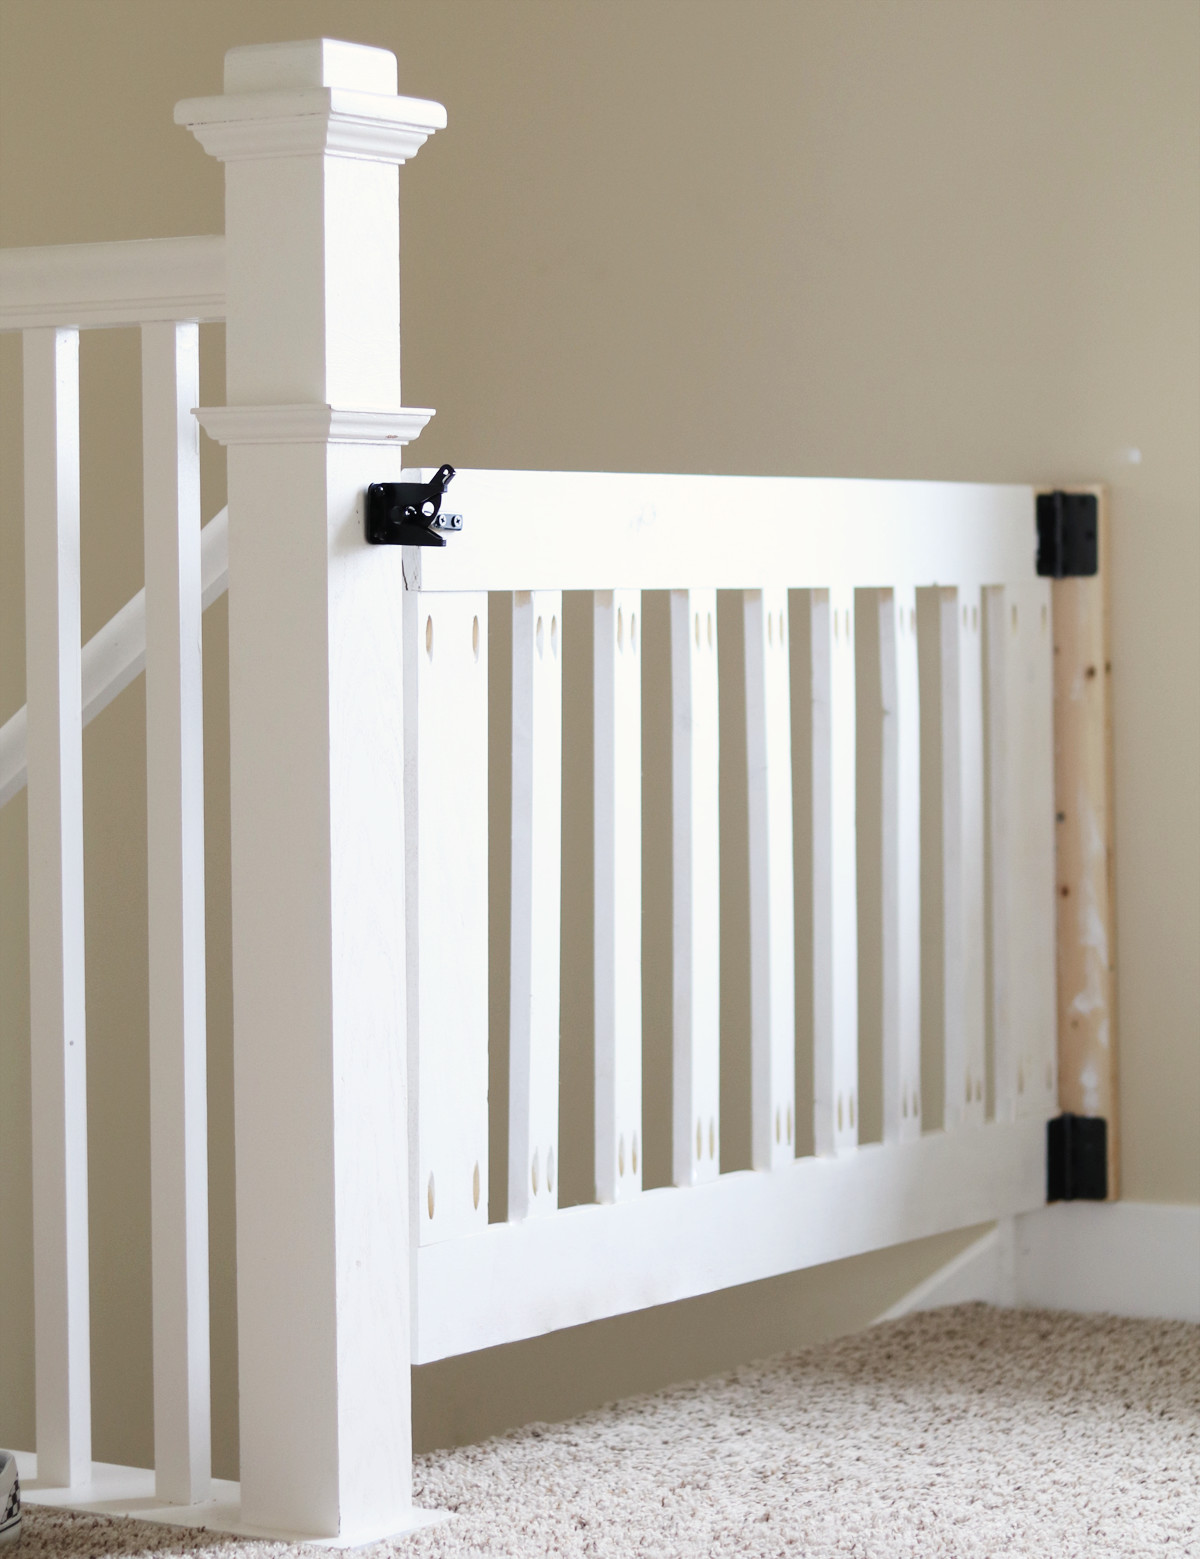 Custom Wooden Diy Baby Gate For Stairs And Hallways